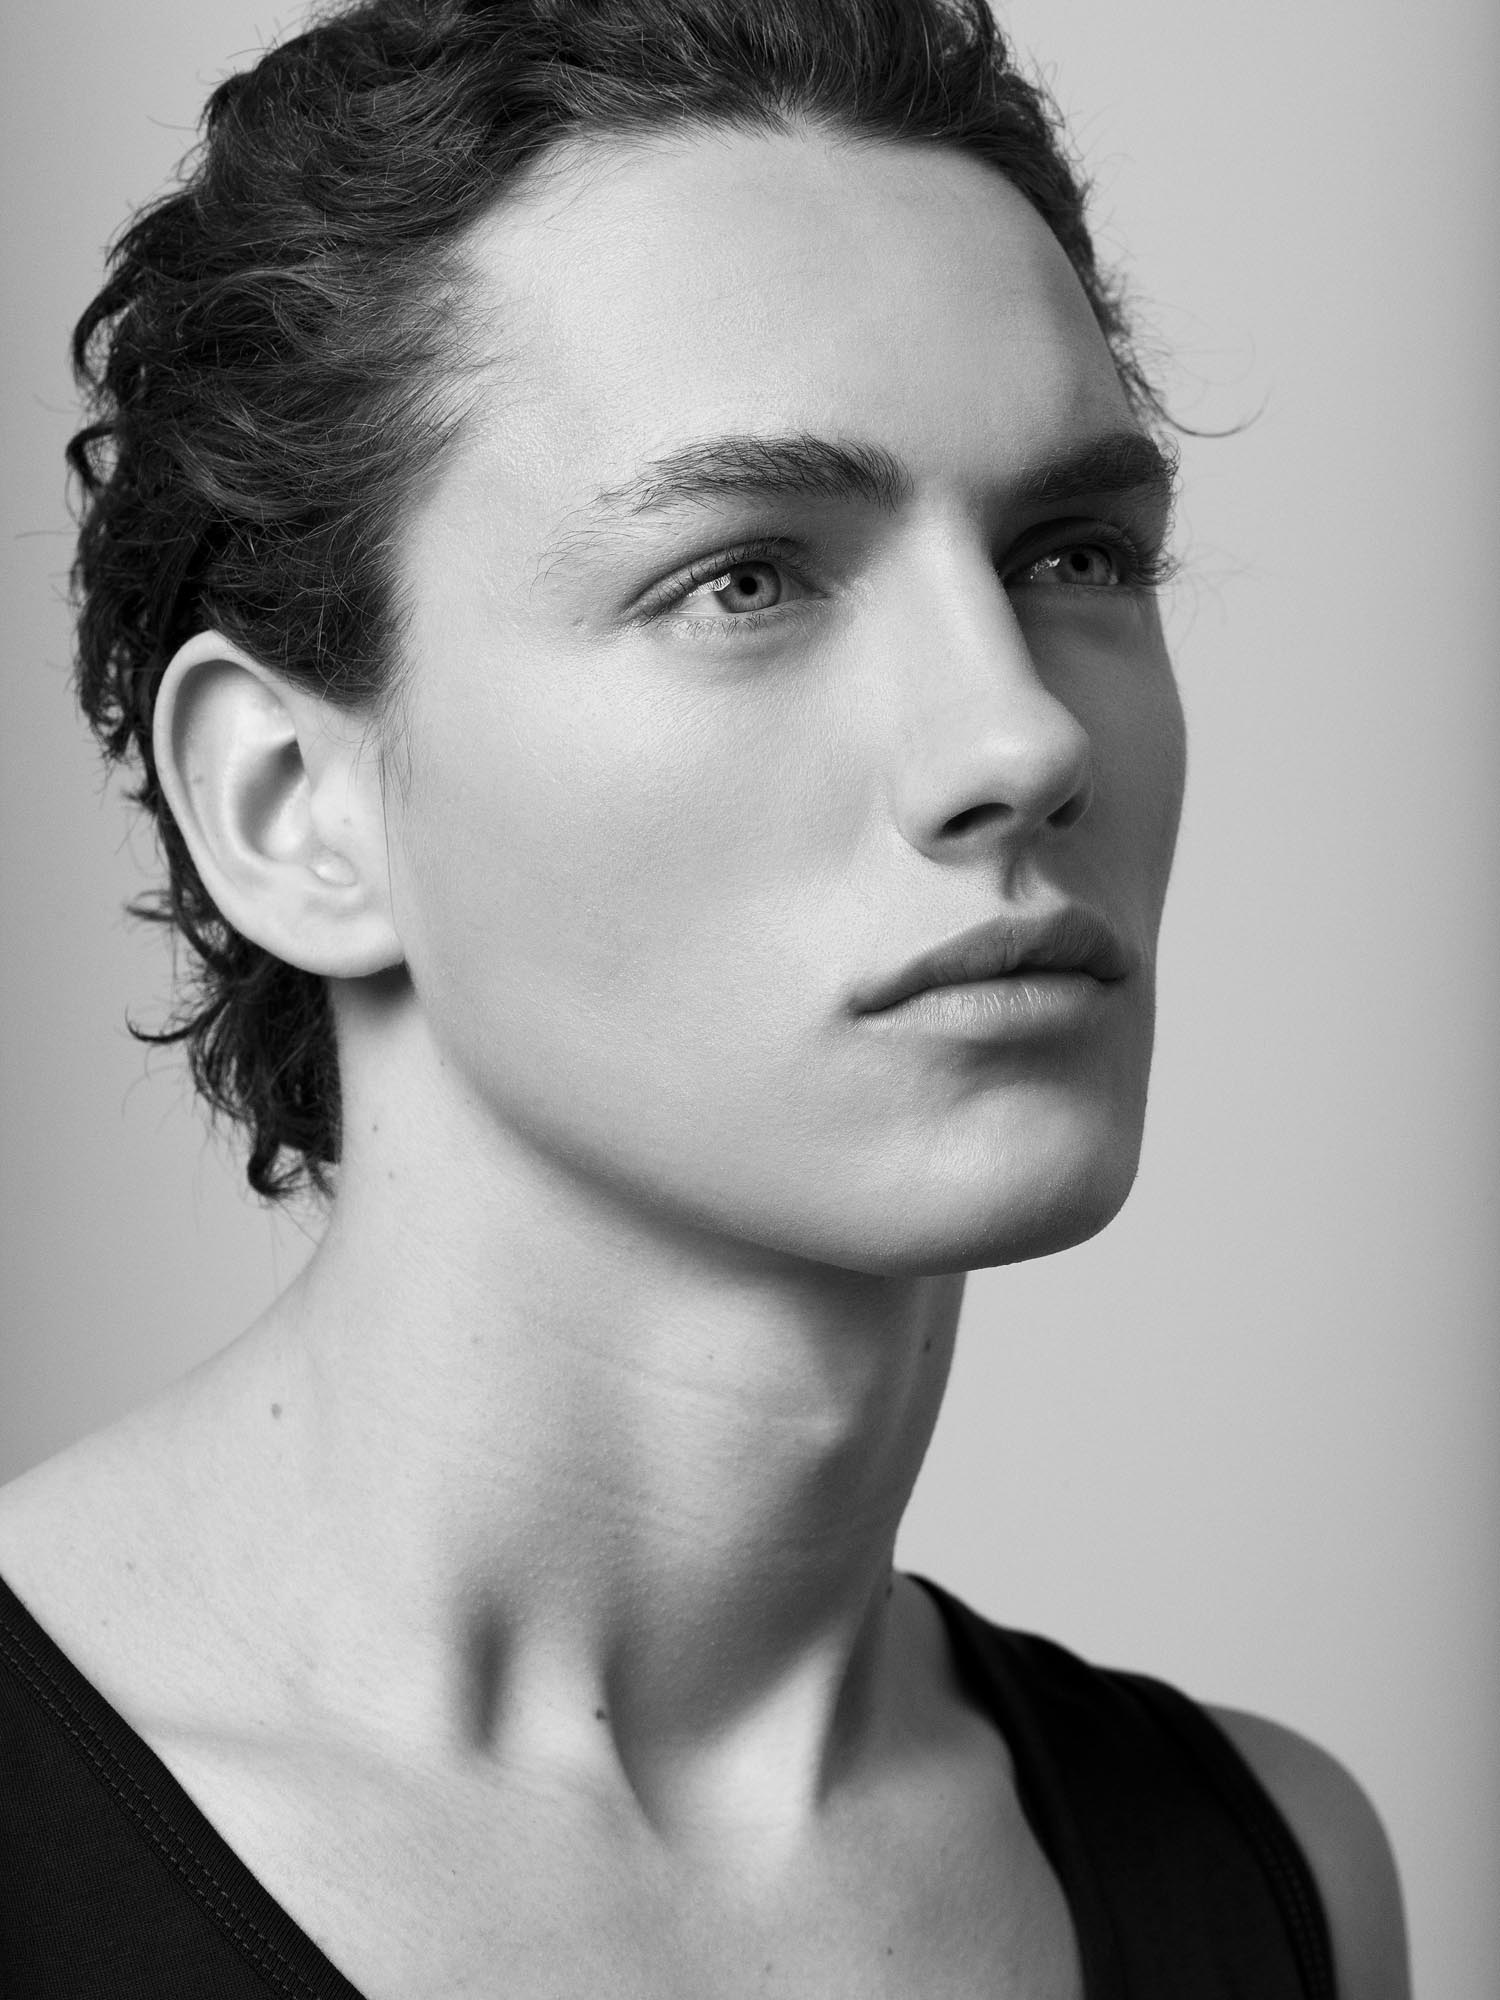 jakob hybholt new york model management 2pm model management models